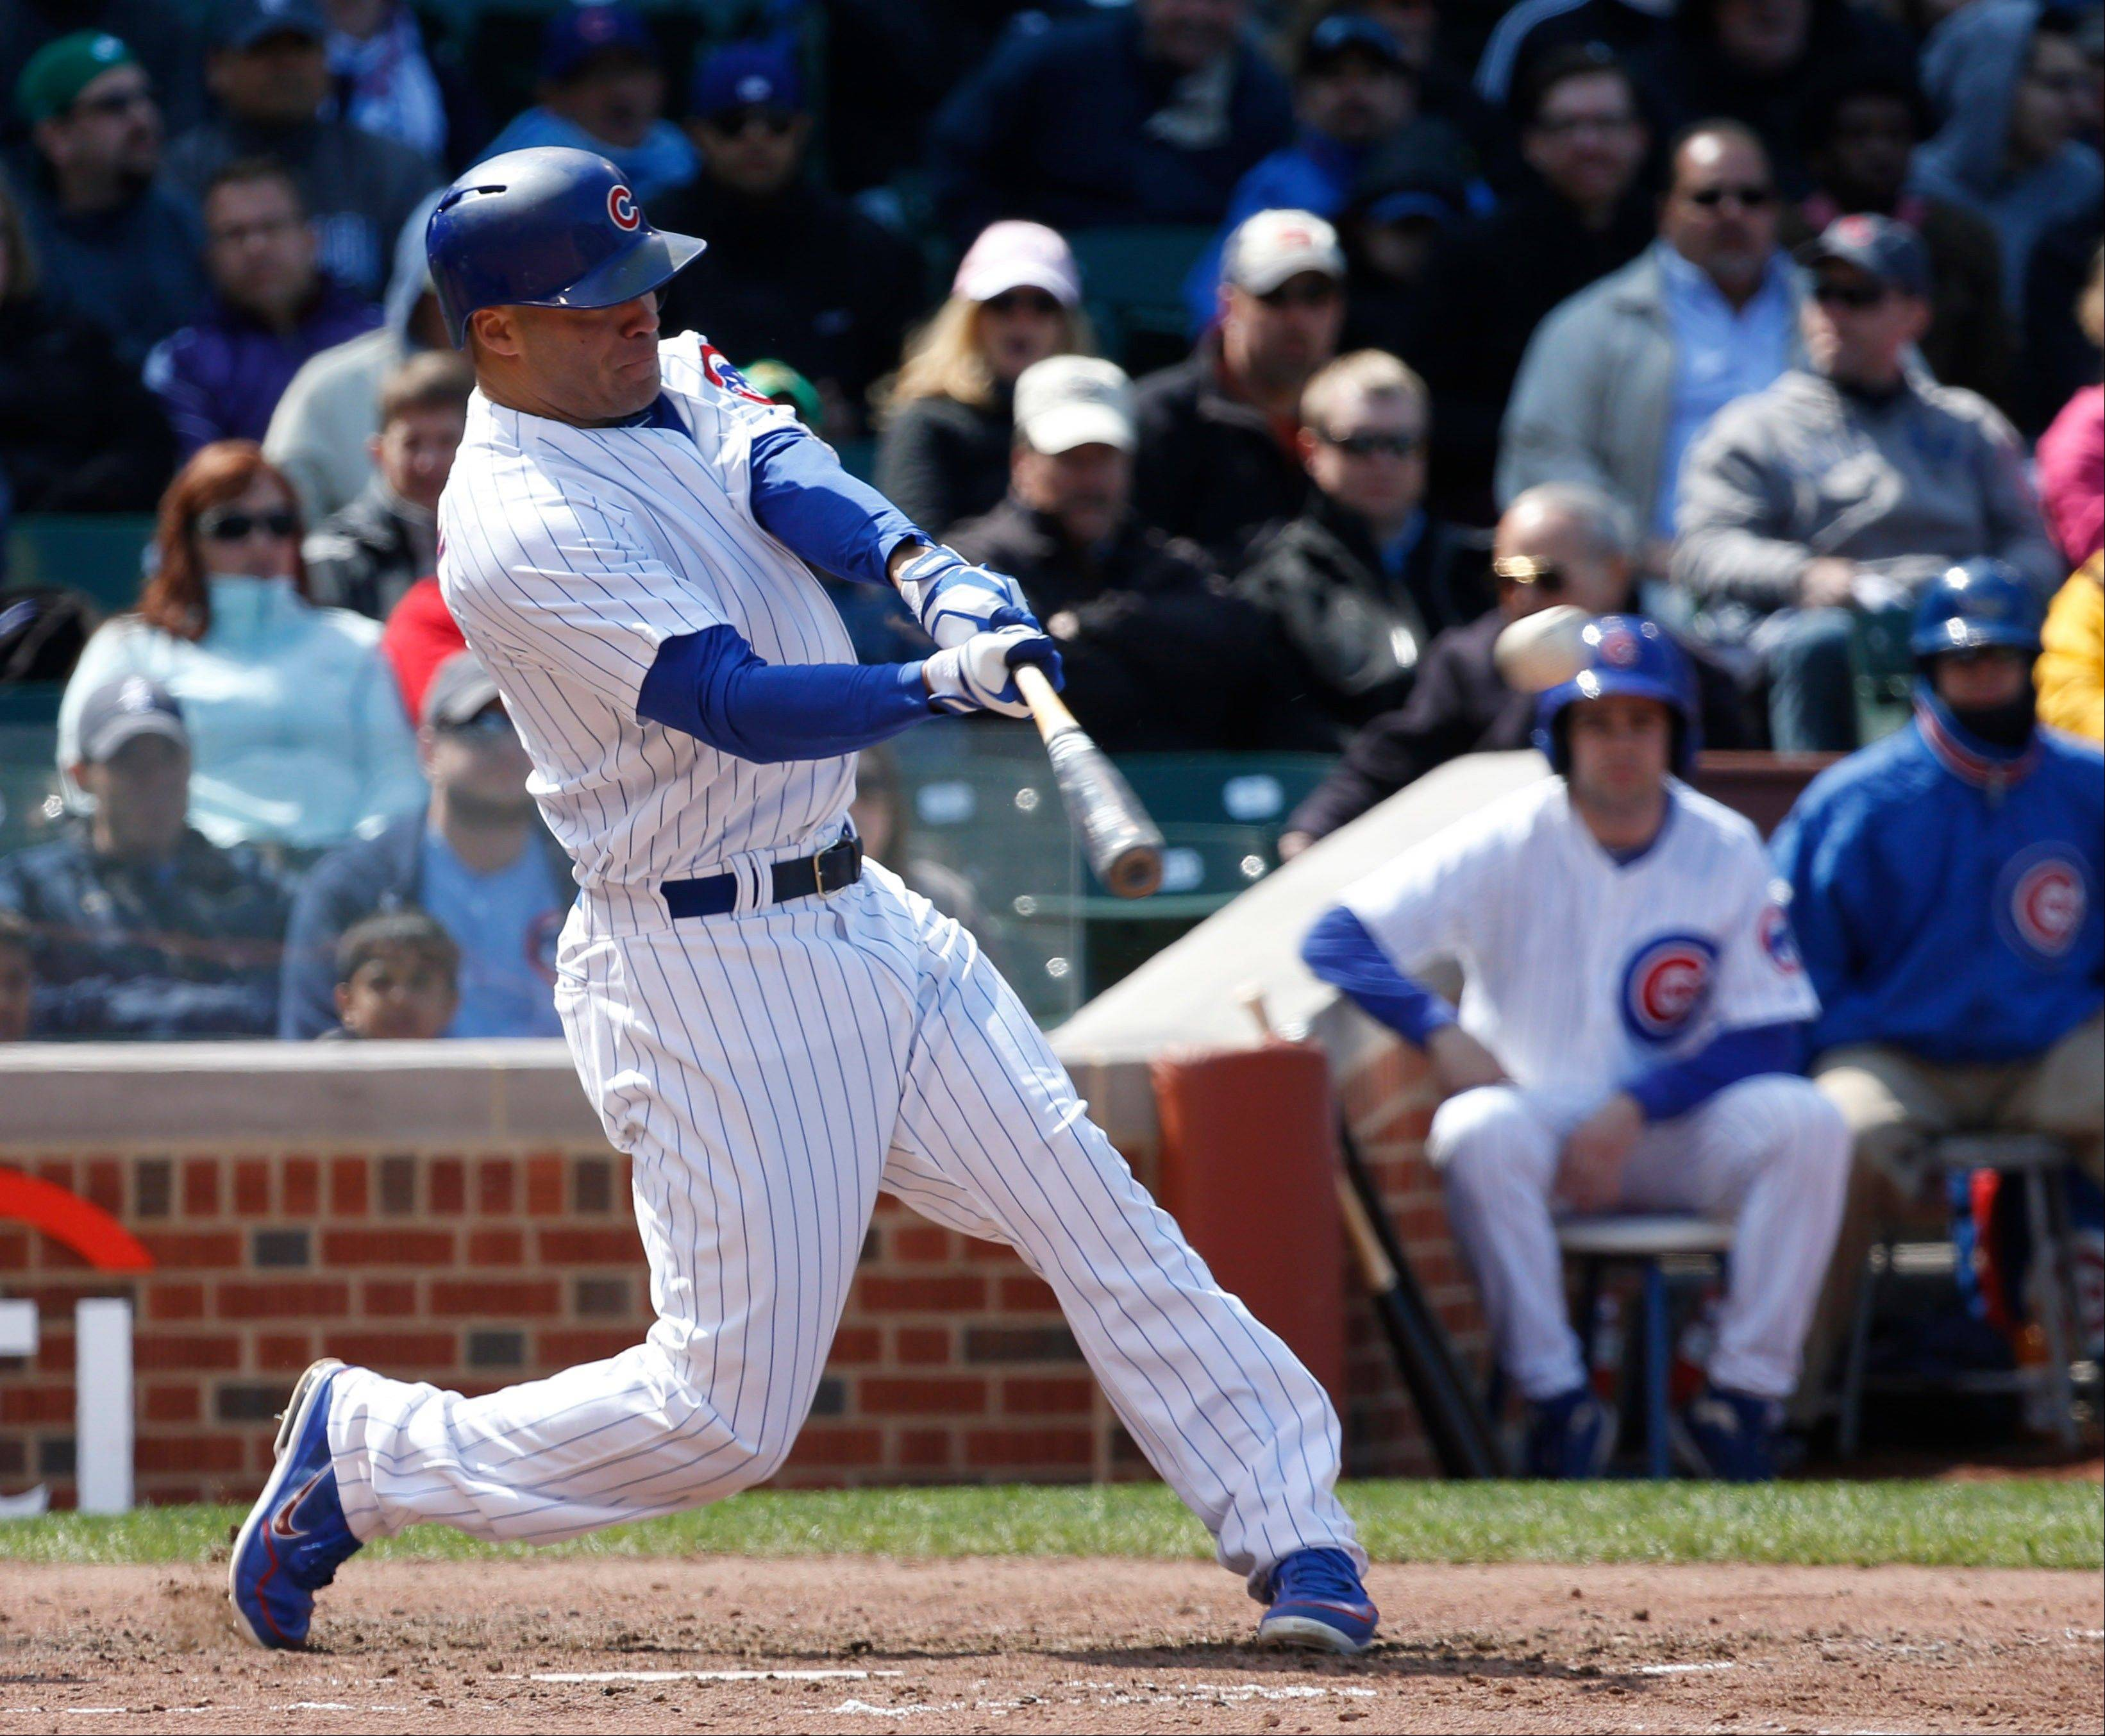 Scott Hairston launches a two-run home run off San Diego Padres starting pitcher Eric Stults to give the Cubs a short-lived 2-0 lead Thursday.